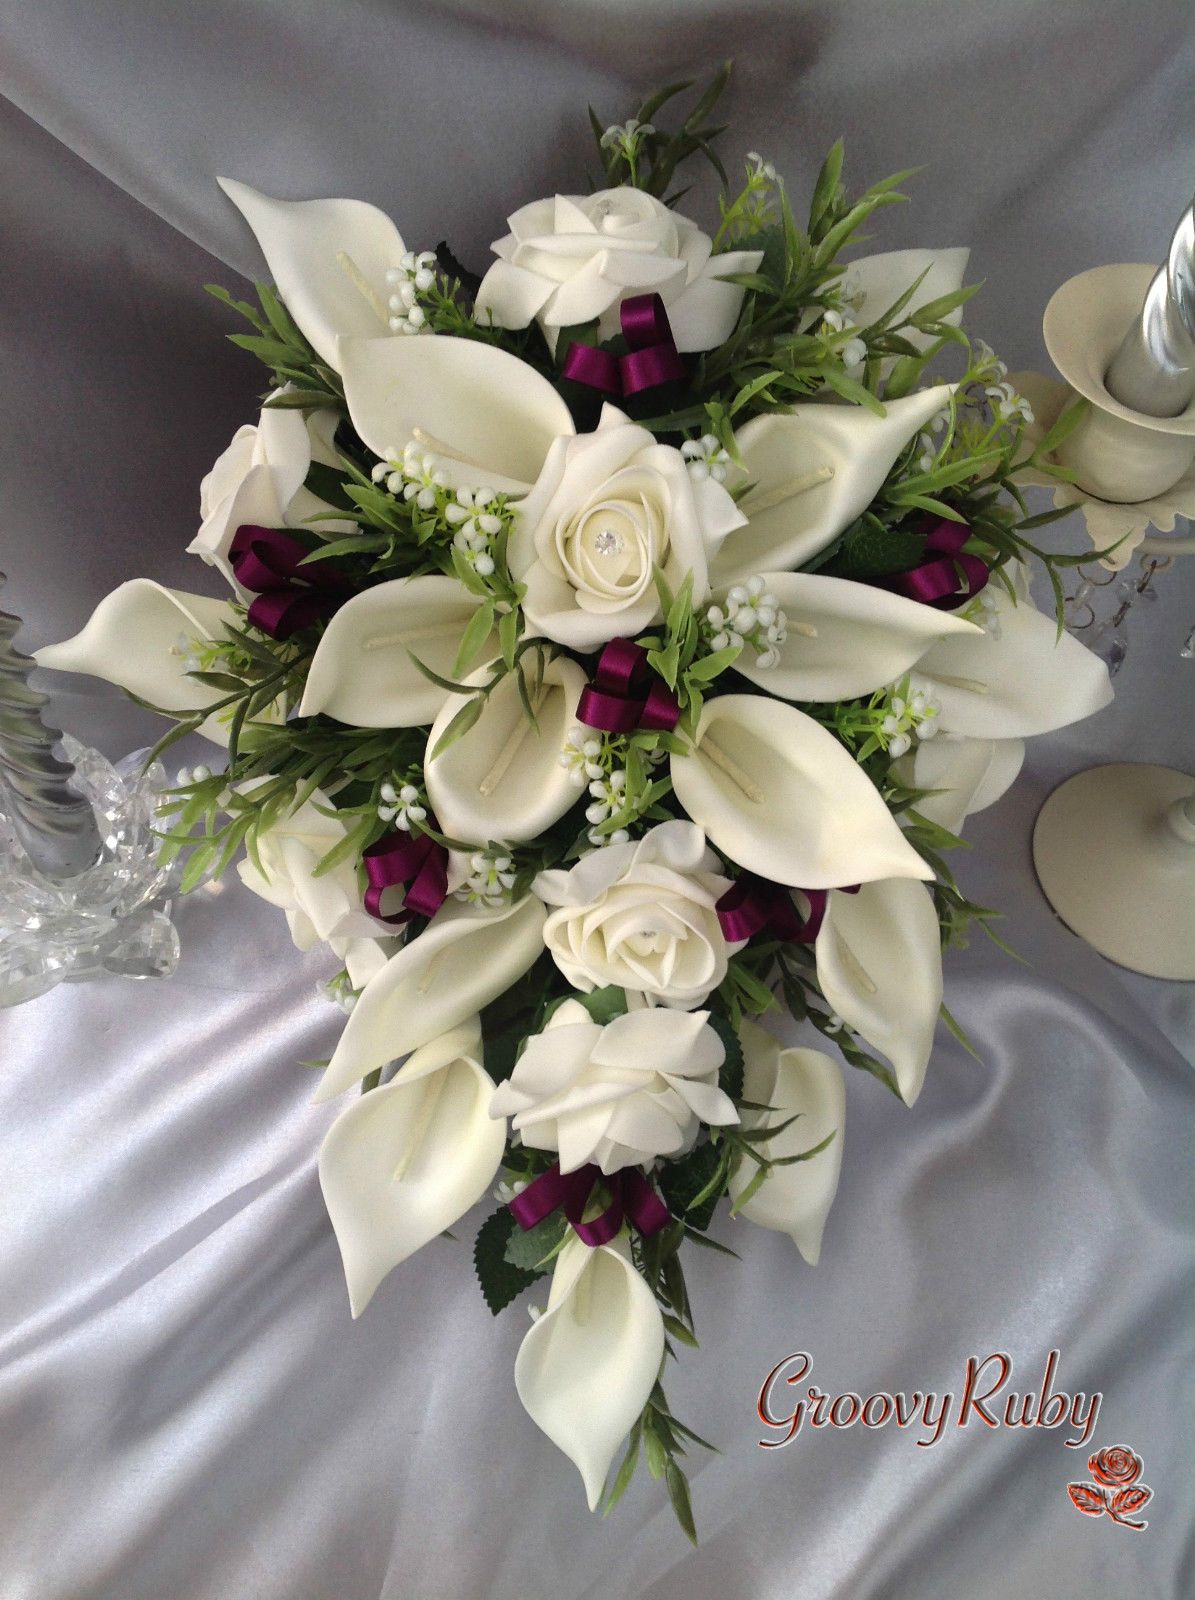 Details about Wedding Flowers, Ivory Rose & Calla Lily